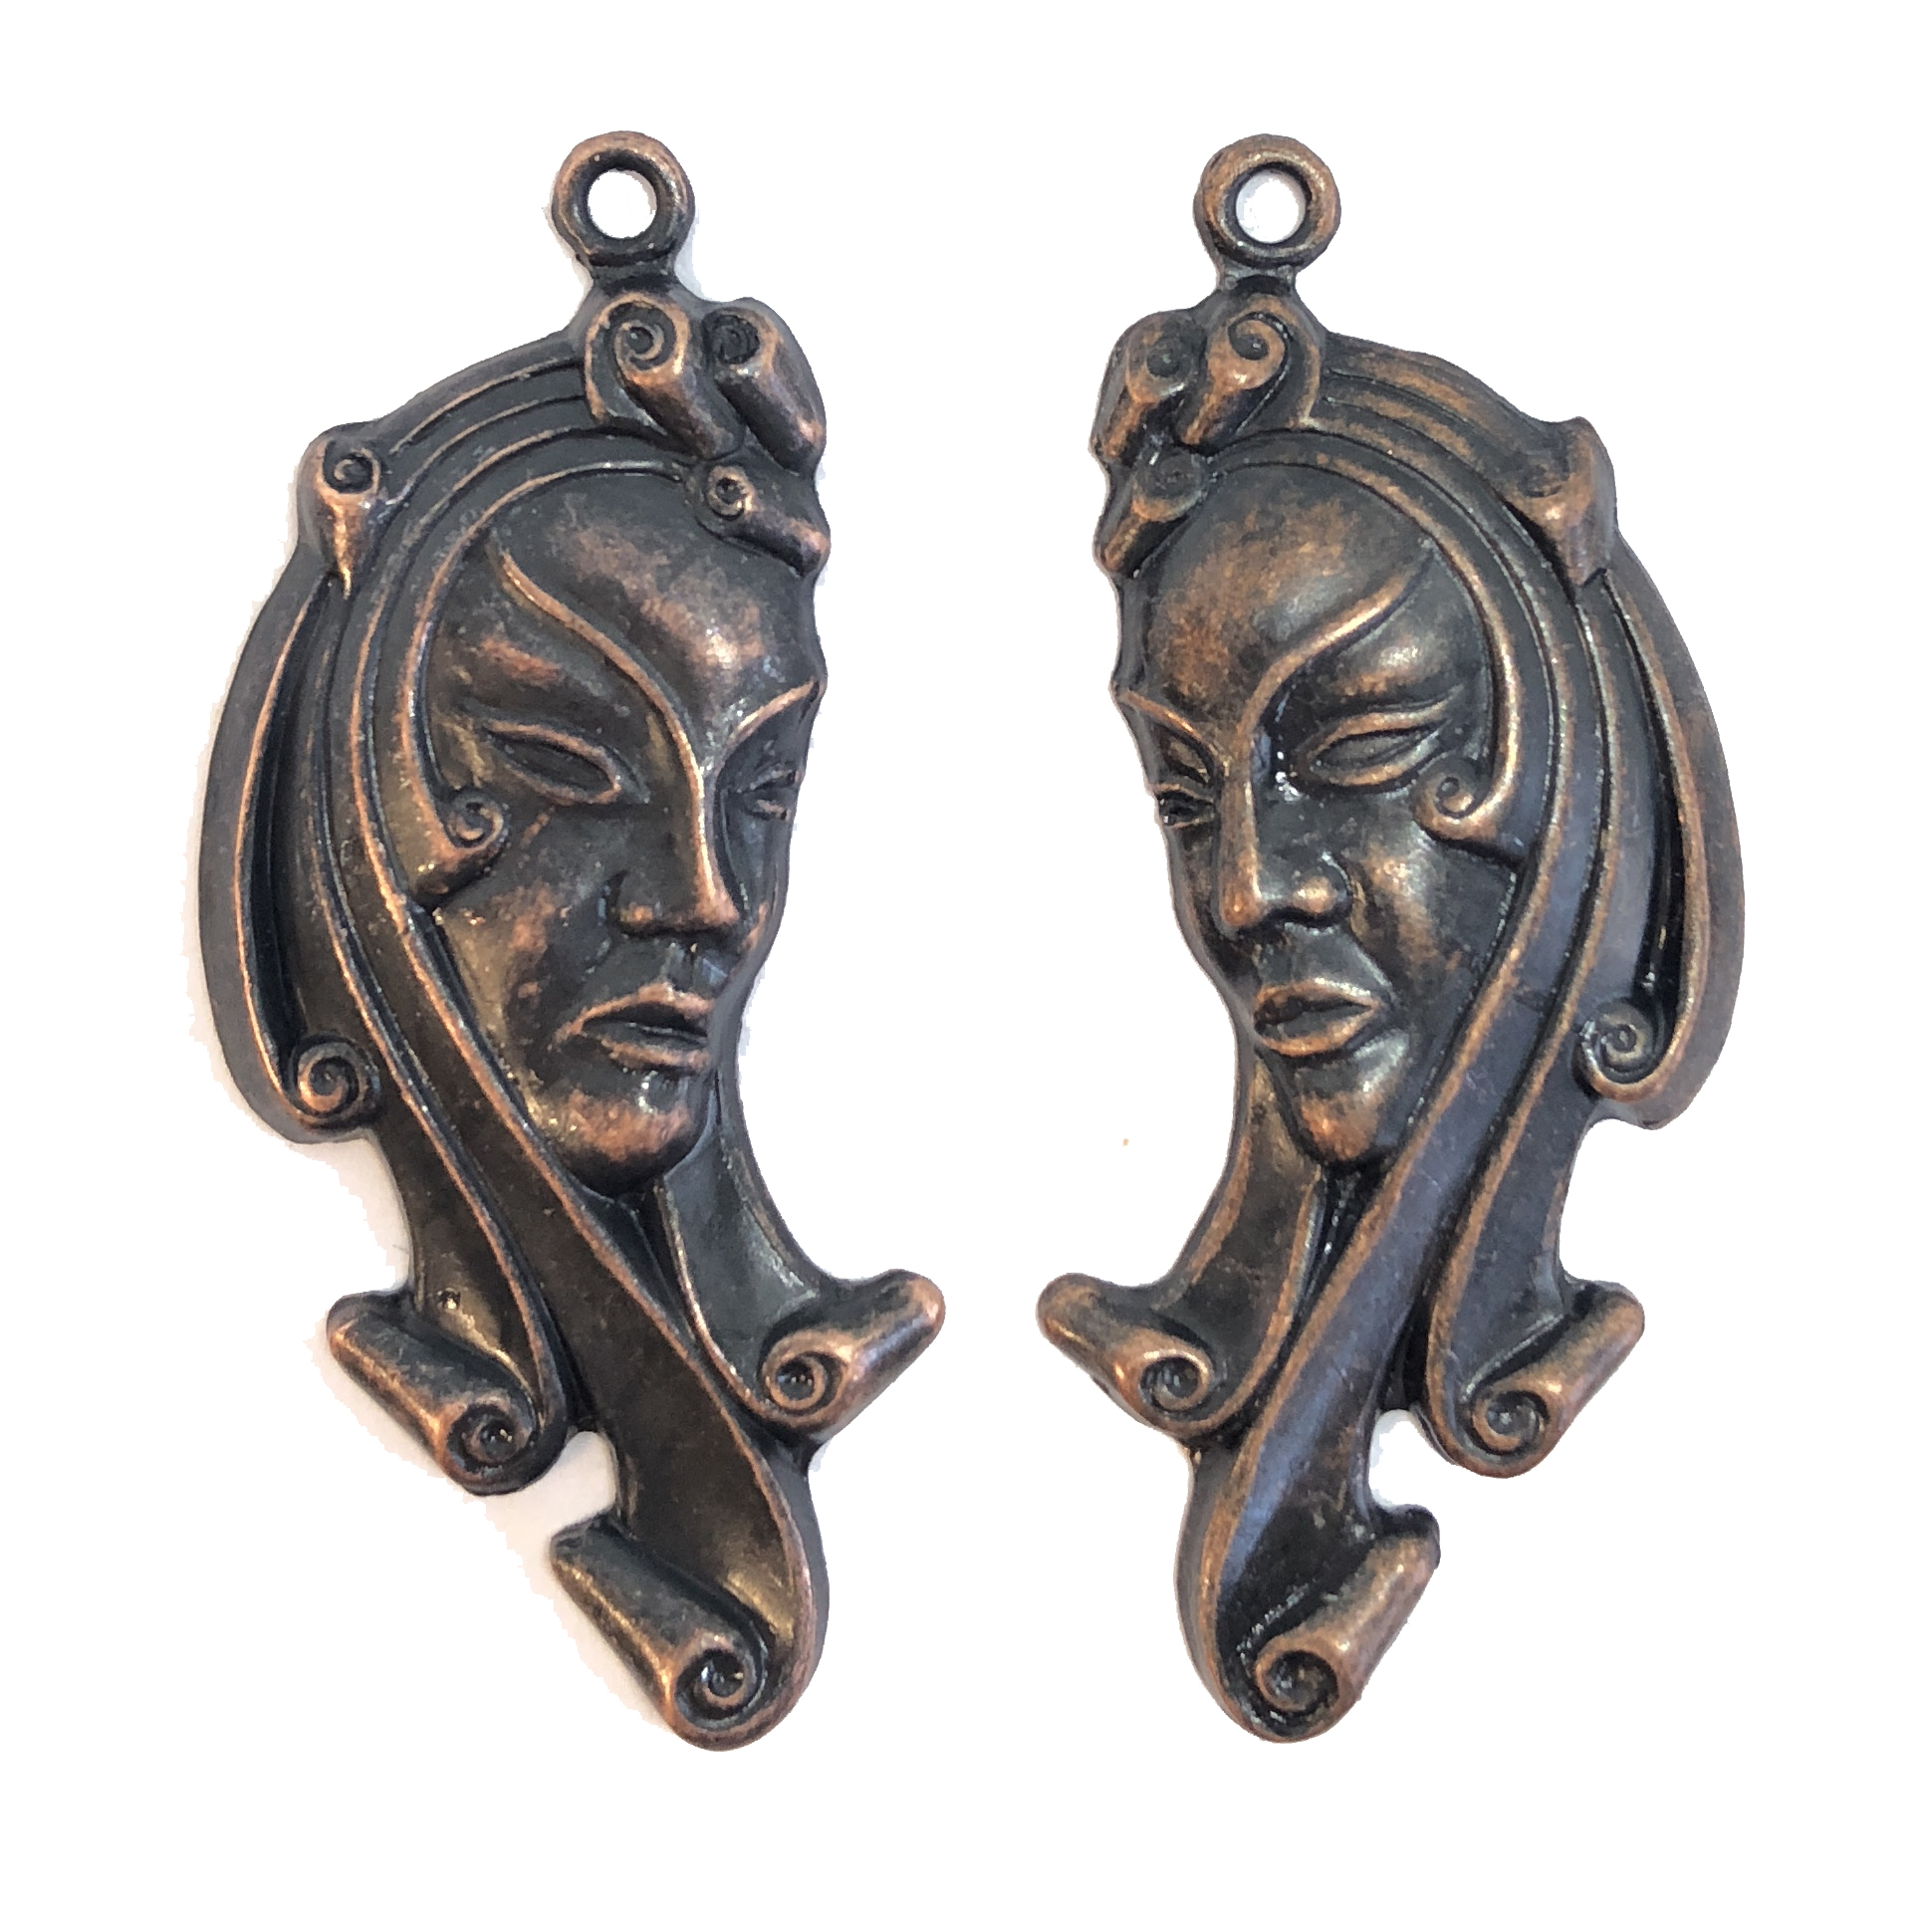 exotic lady, brass stampings, pair, 08611, earrings, ear drops, woman, lady, face, ethnic, woman's face, drops, Bsue Boutiques, jewelry supplies, plated brass, stamping, pair of earrings